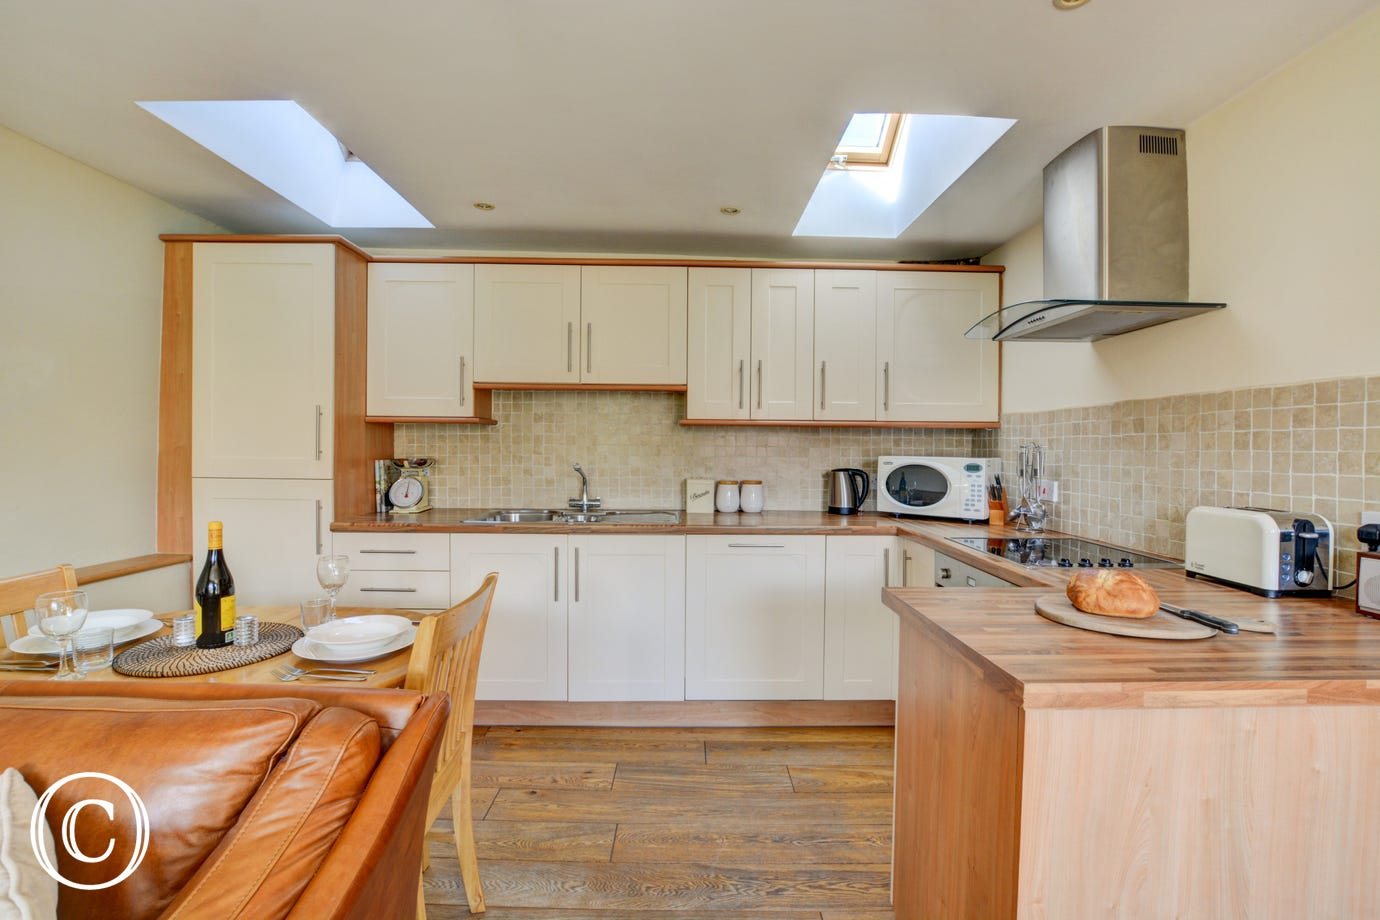 The kitchen area within the open plan living space is well equipped with everything you could need for a self catering holiday